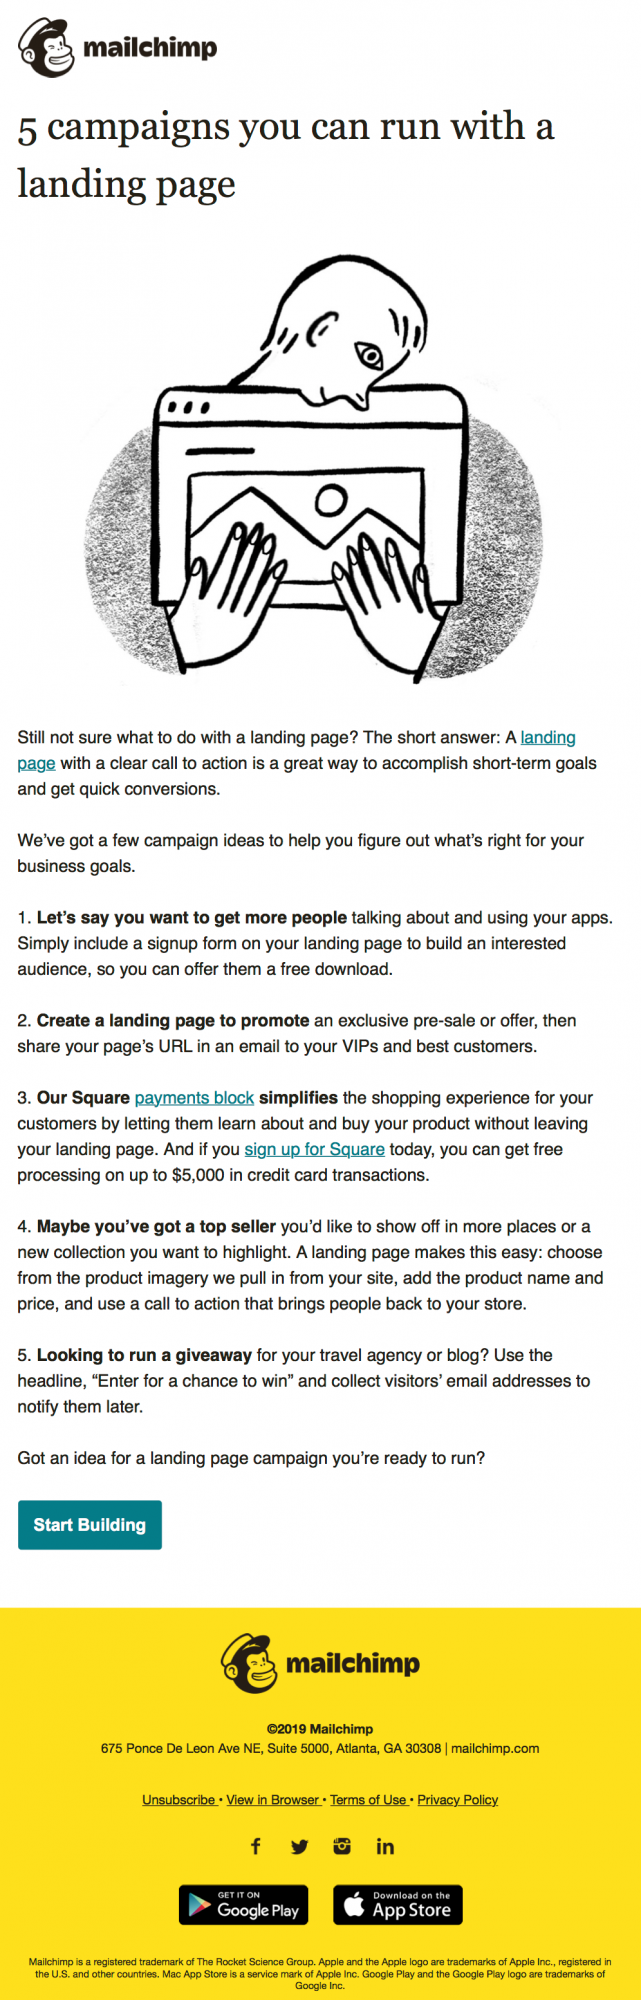 BEST EMAIL MARKETING CONTENT IDEAS IN 2019